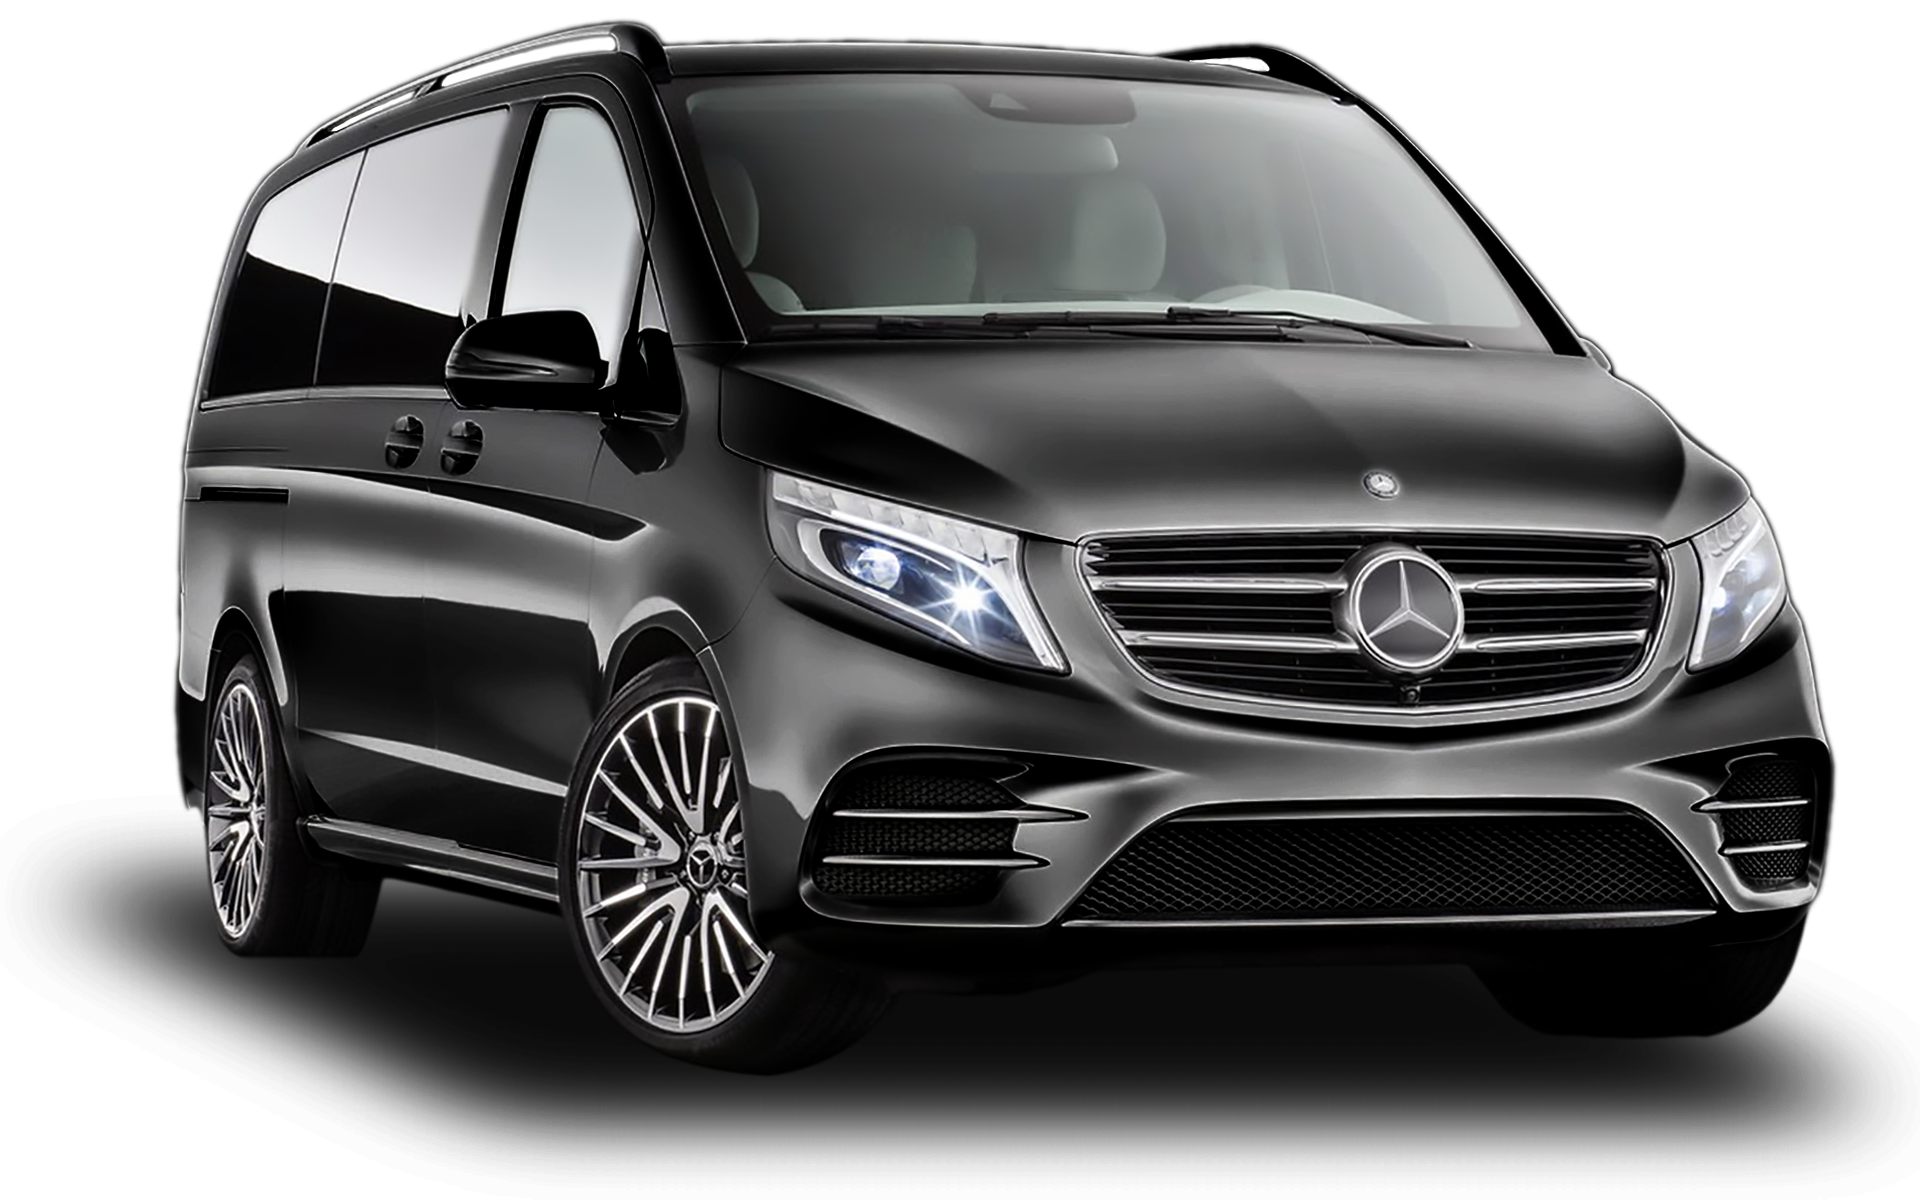 Mercedes-benz v photo - 3